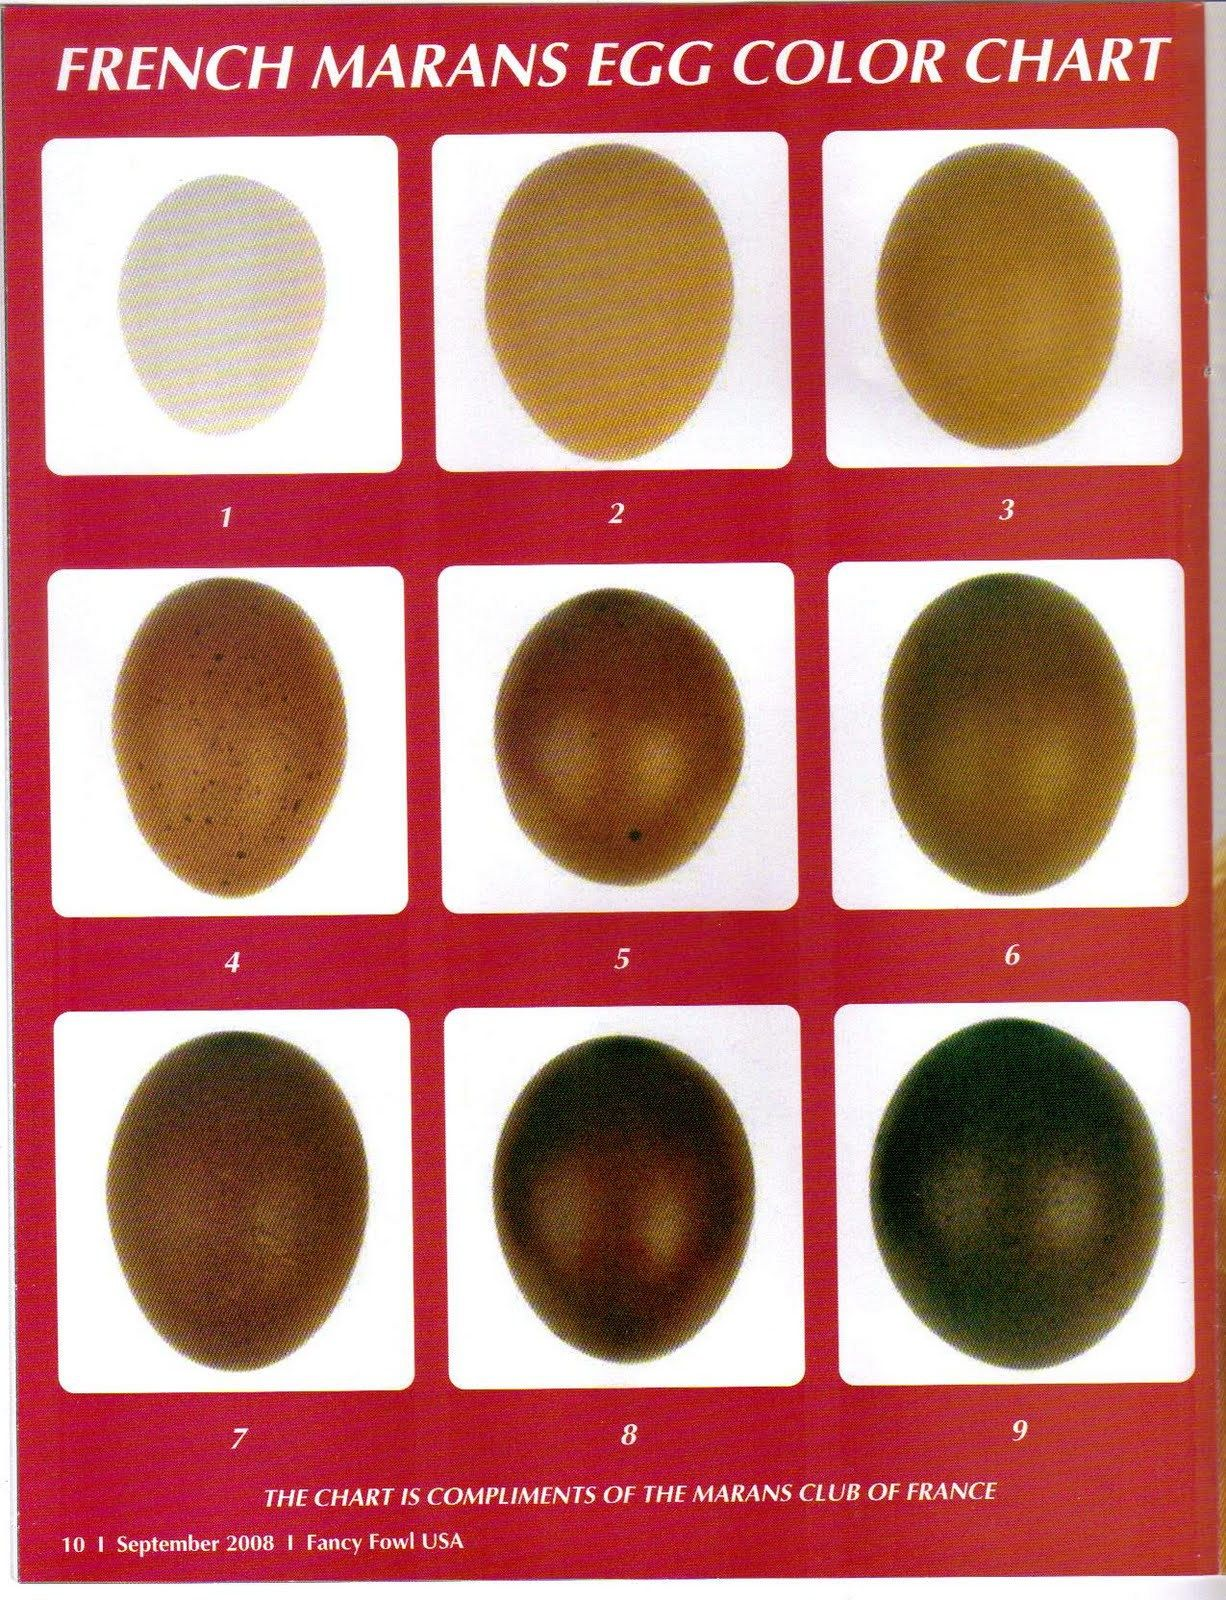 Marans egg color chart